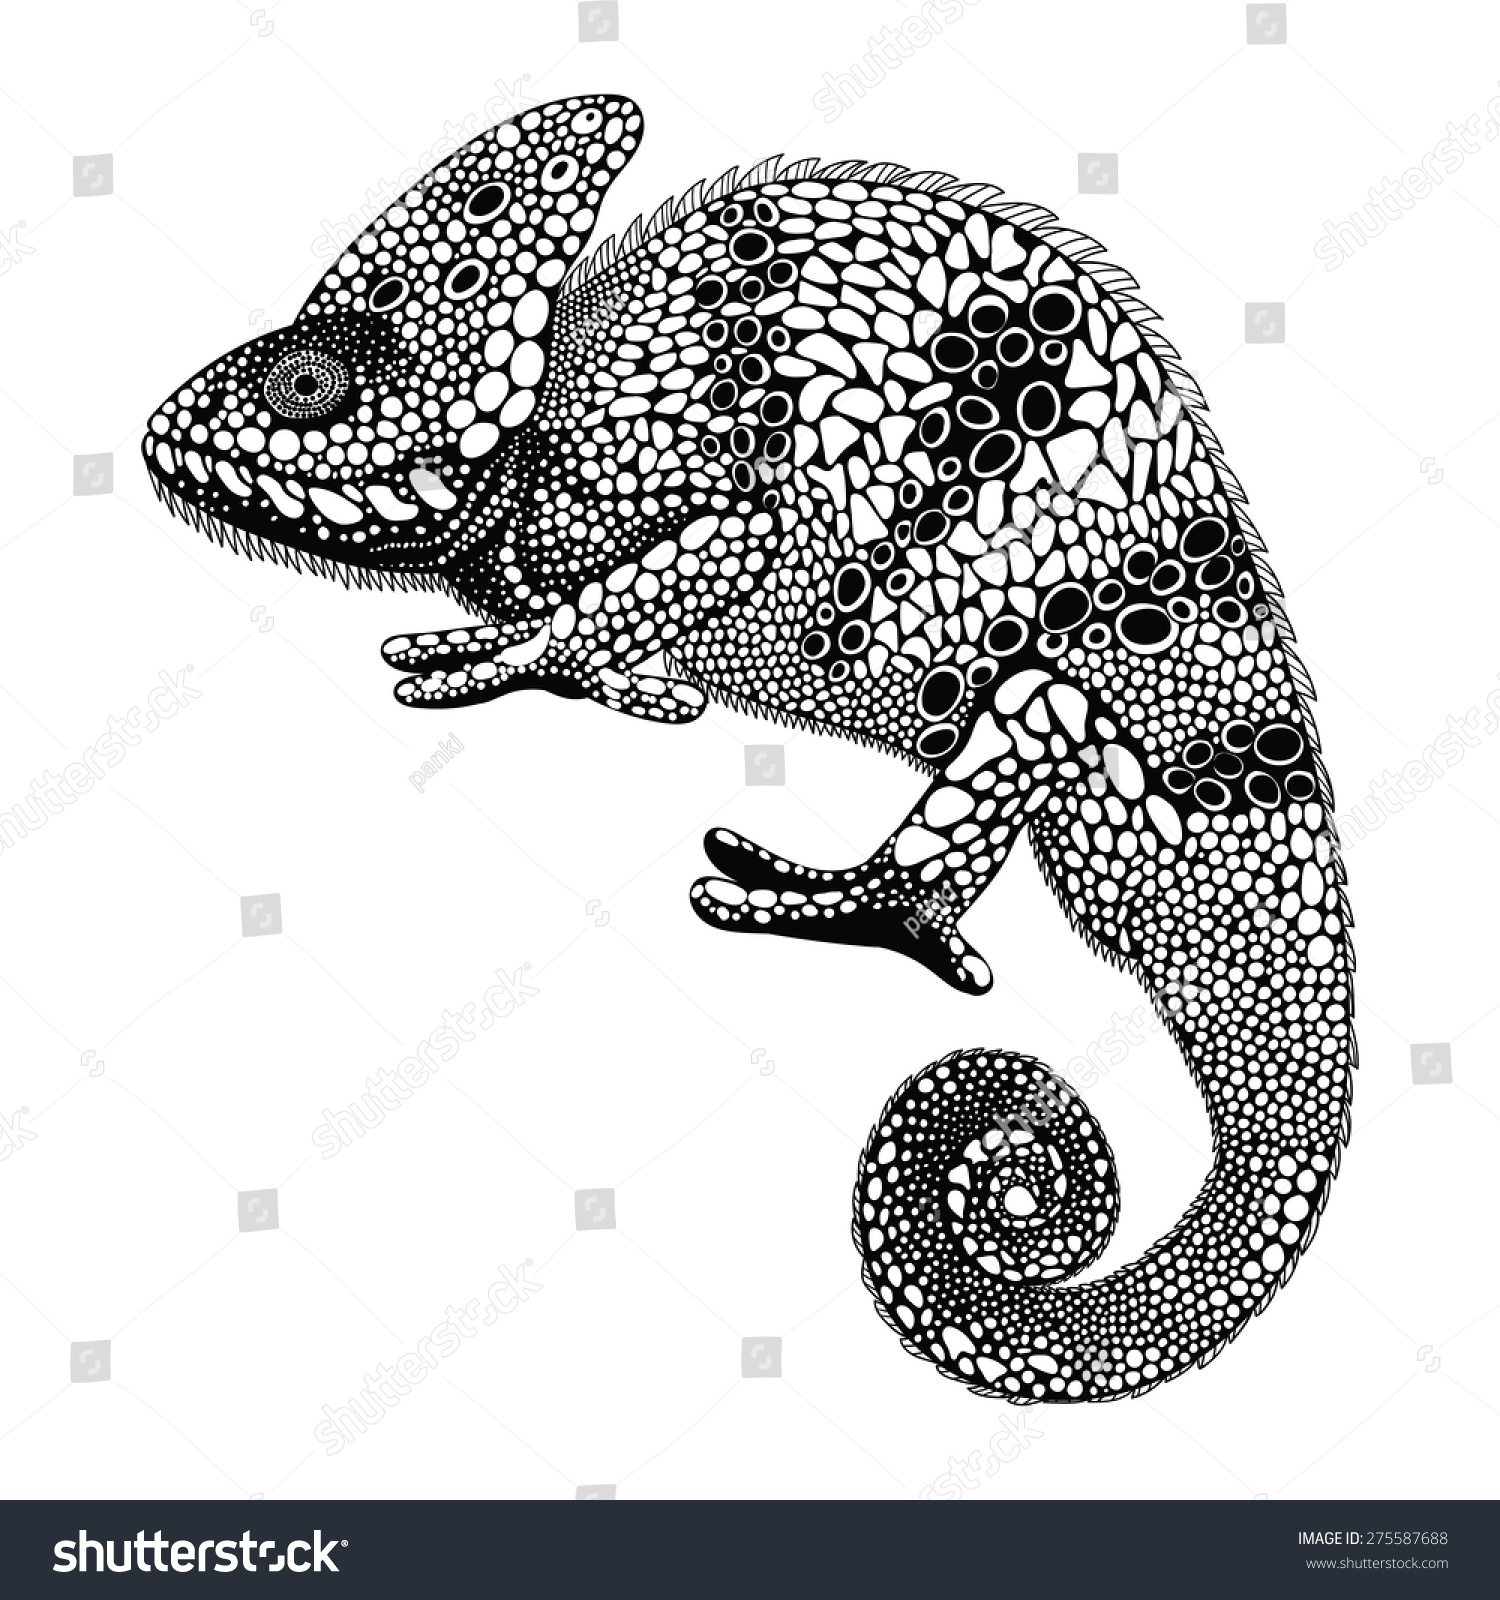 Chameleon Arts Tattoo Flash: Zentangle Stylized Chameleon. Hand Drawn Reptile